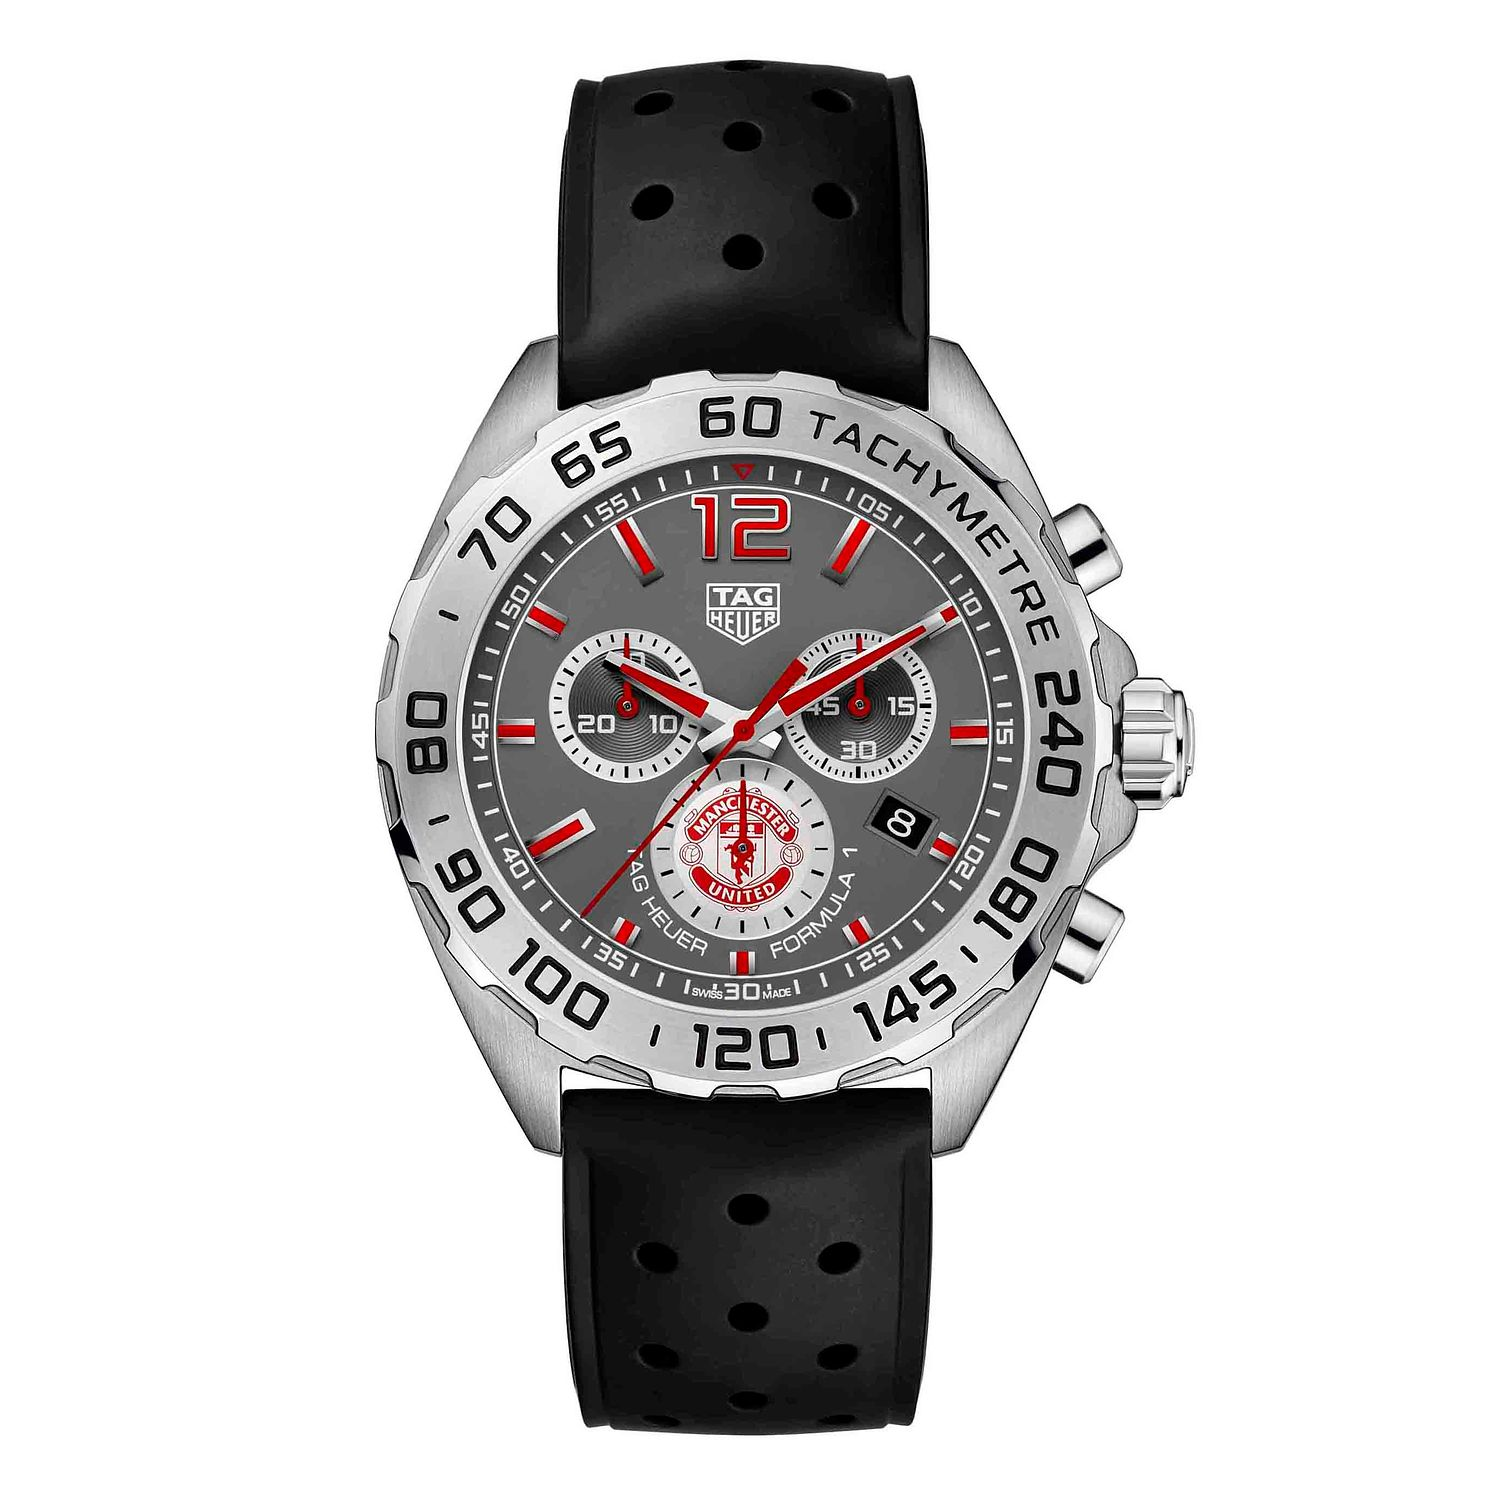 TAG Heuer Formula 1 Men's Mufc Black Rubber Strap Watch - Product number 9232192